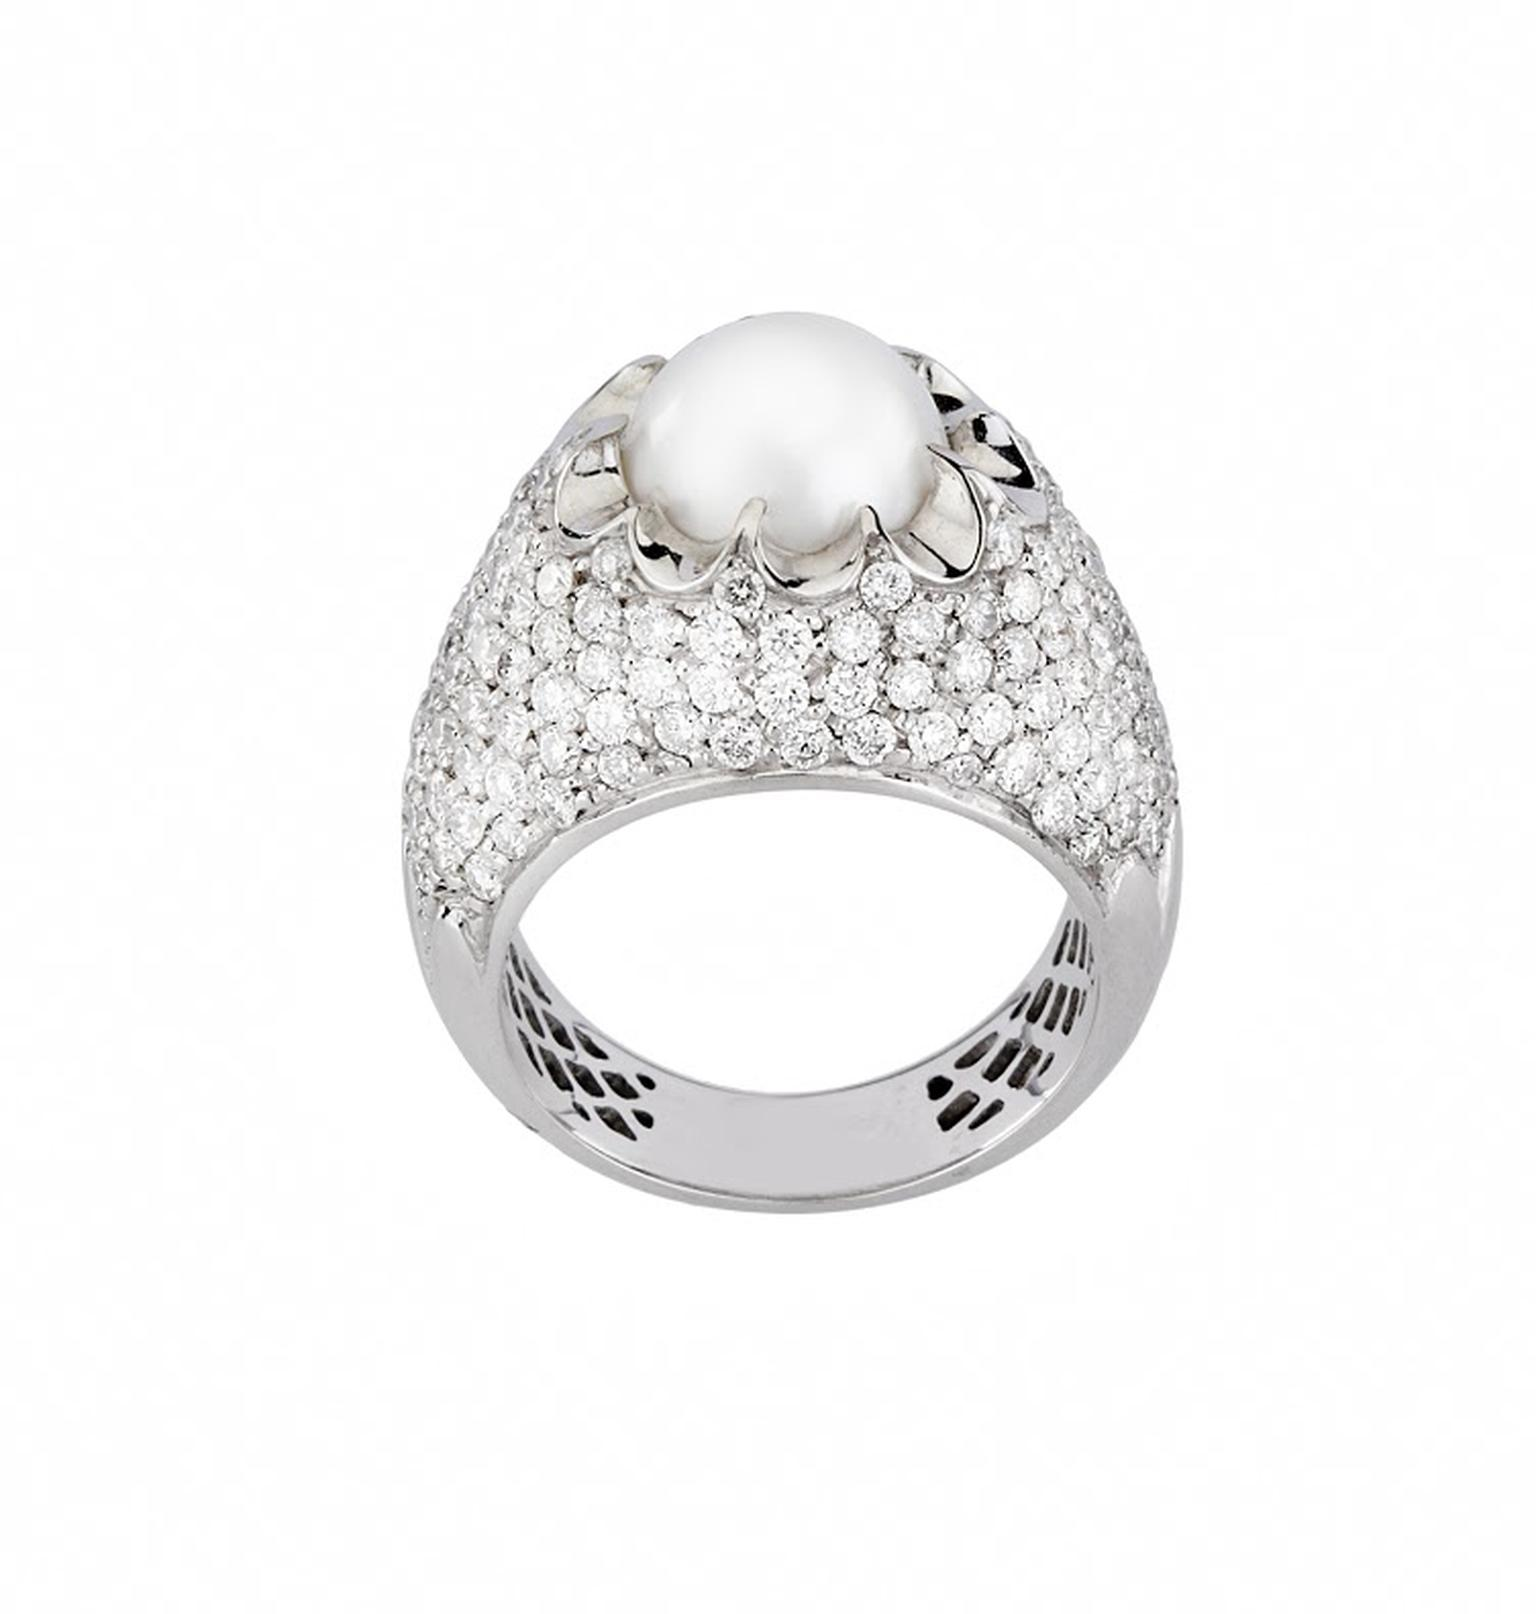 Mimata Corona diamond ring in white gold, set with a South Sea pearl, from the Stars collection.